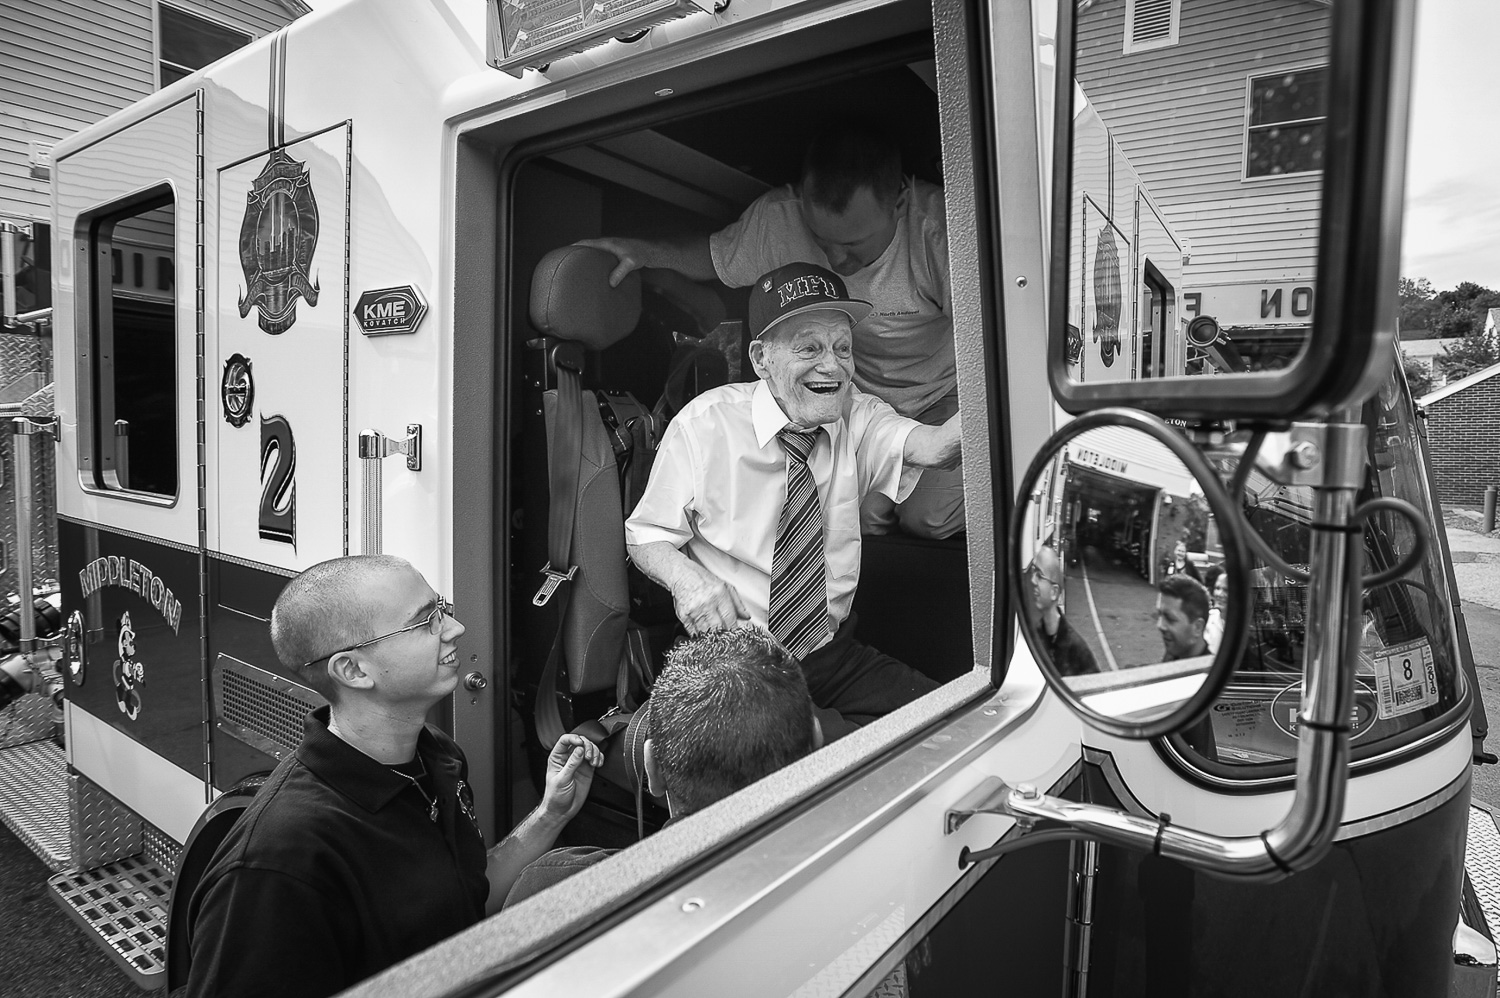 Nikon D4s, 1/250 @ f/5.6, ISO 100, 17-35mm  Honorary Middleton firefighter Bobby Jensen, 89, is helped into Middleton Engine 2 as he prepares to go for a ride around the block during his visit at the Middleton Fire Department, Thursday, Sept. 14, 2017.